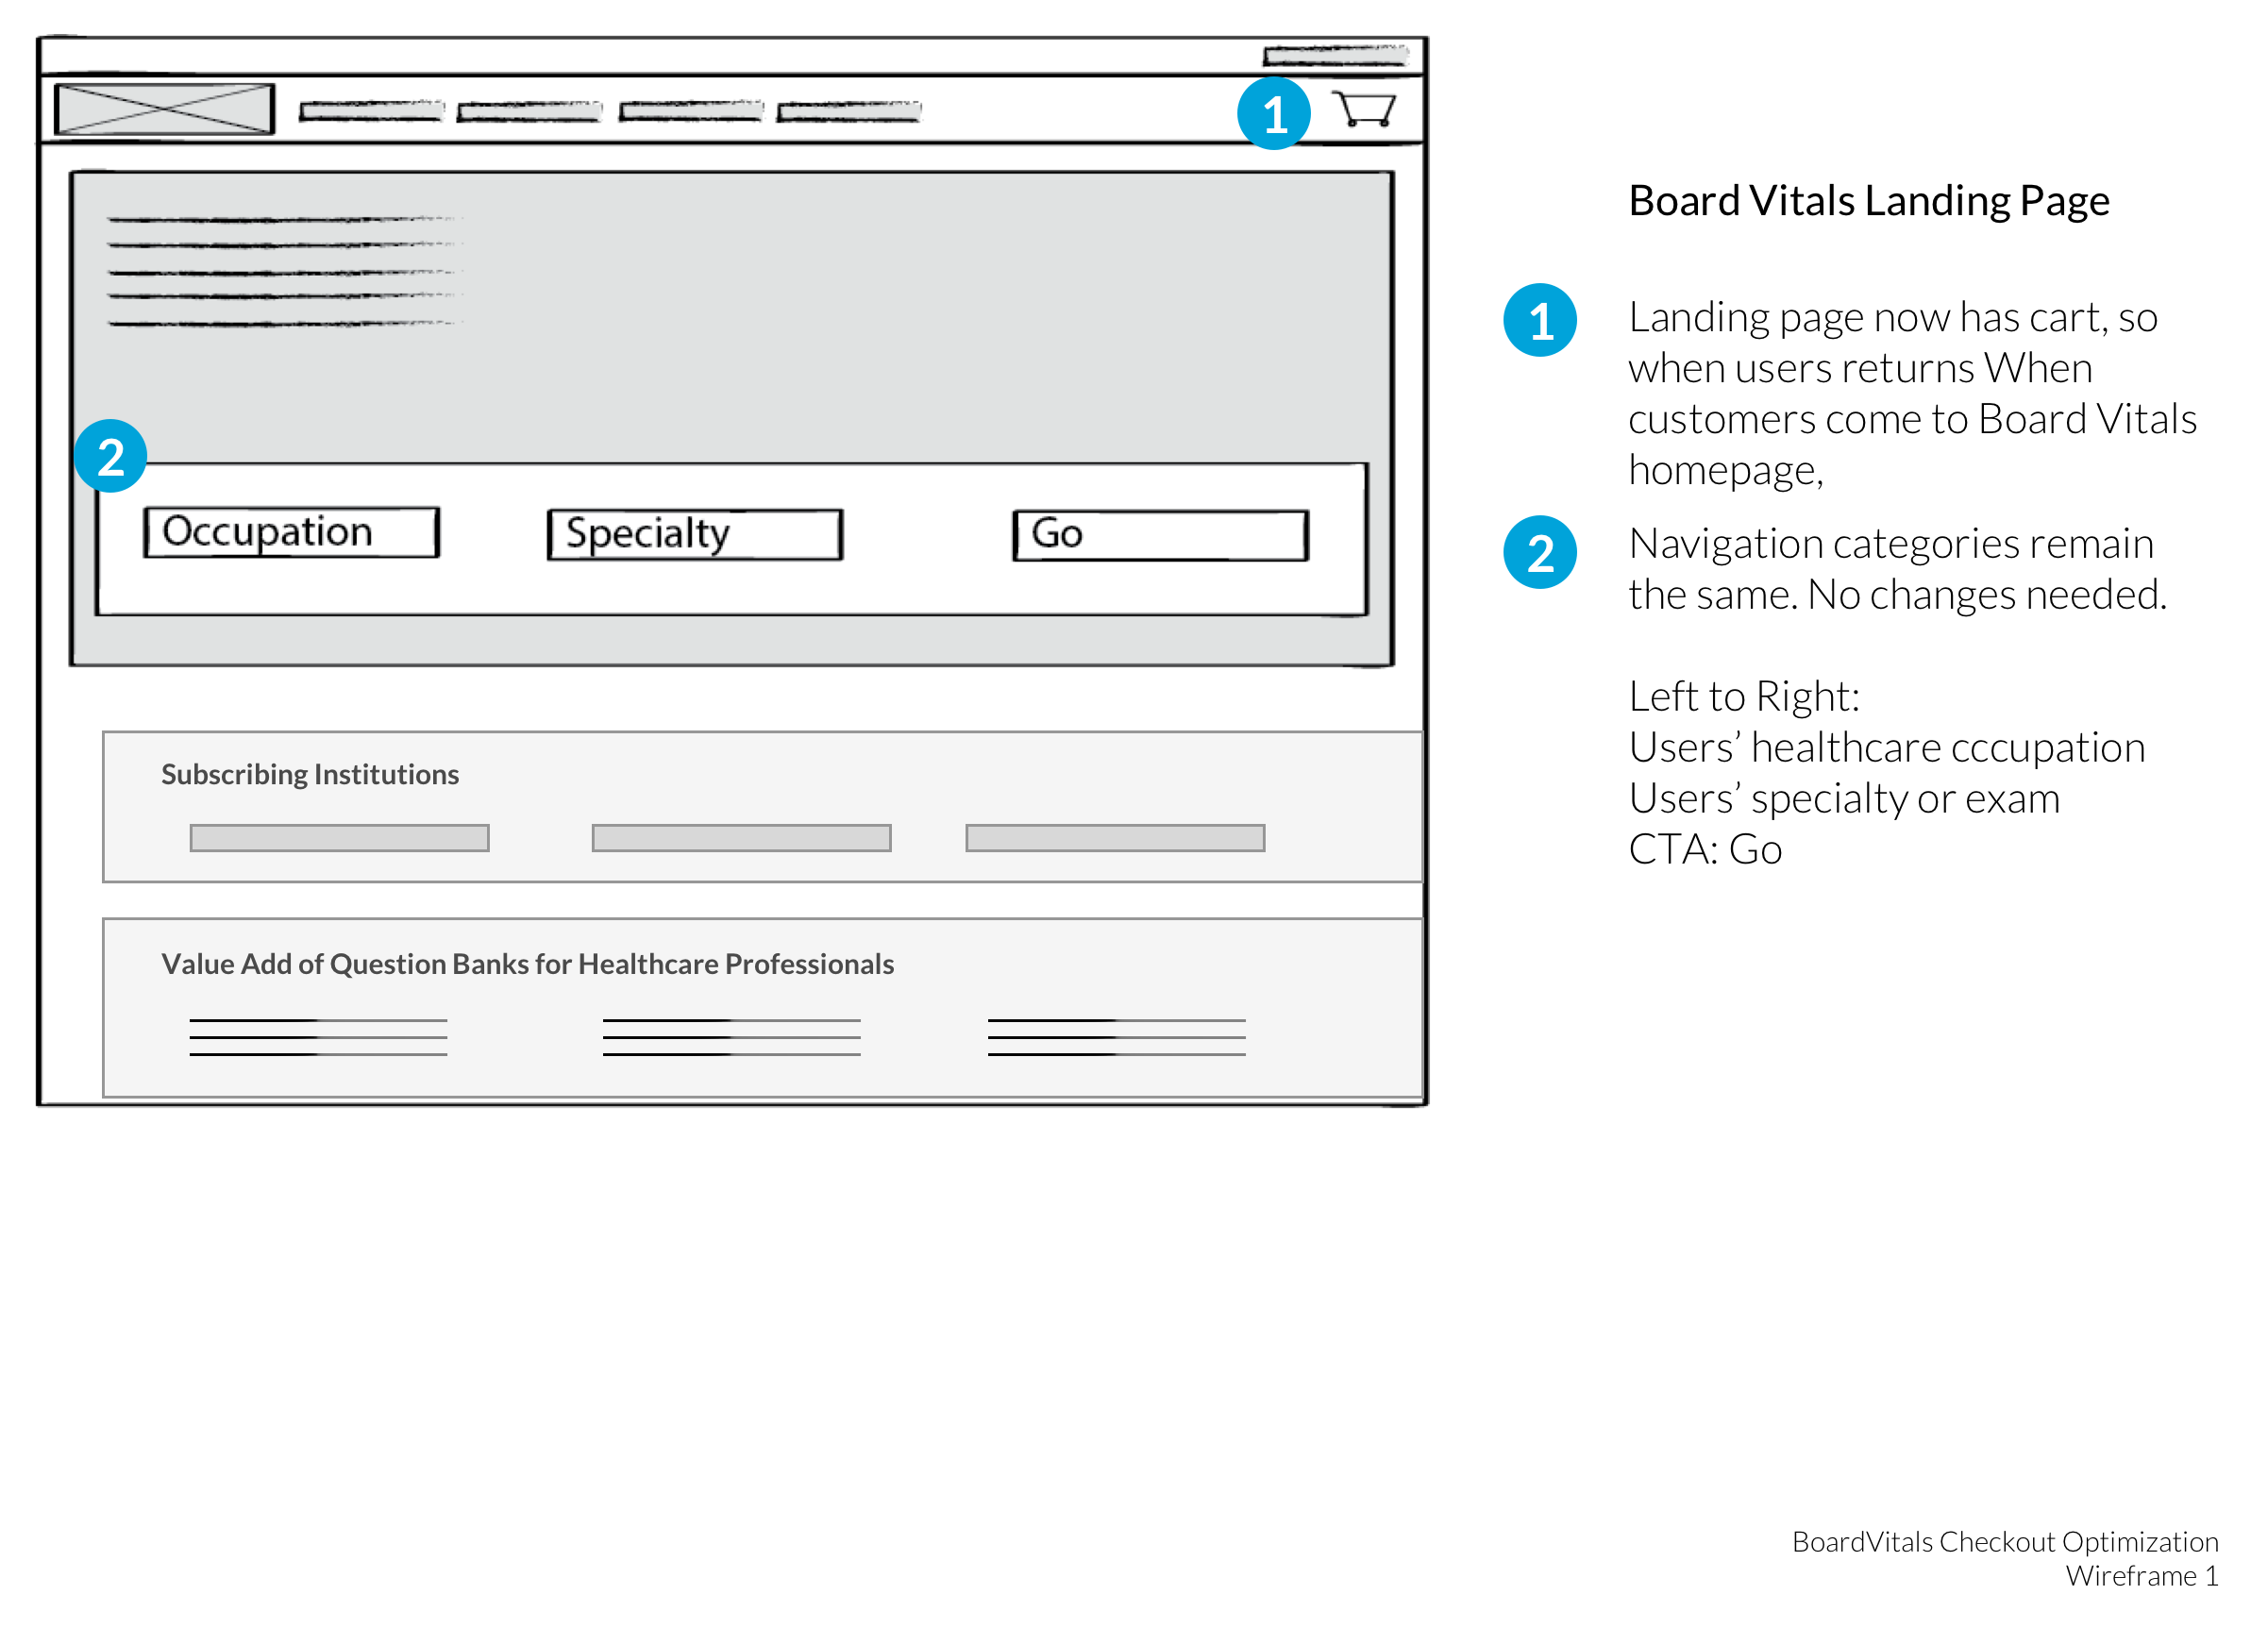 BV checkout optimization_wireframe_flows Copy 1.png